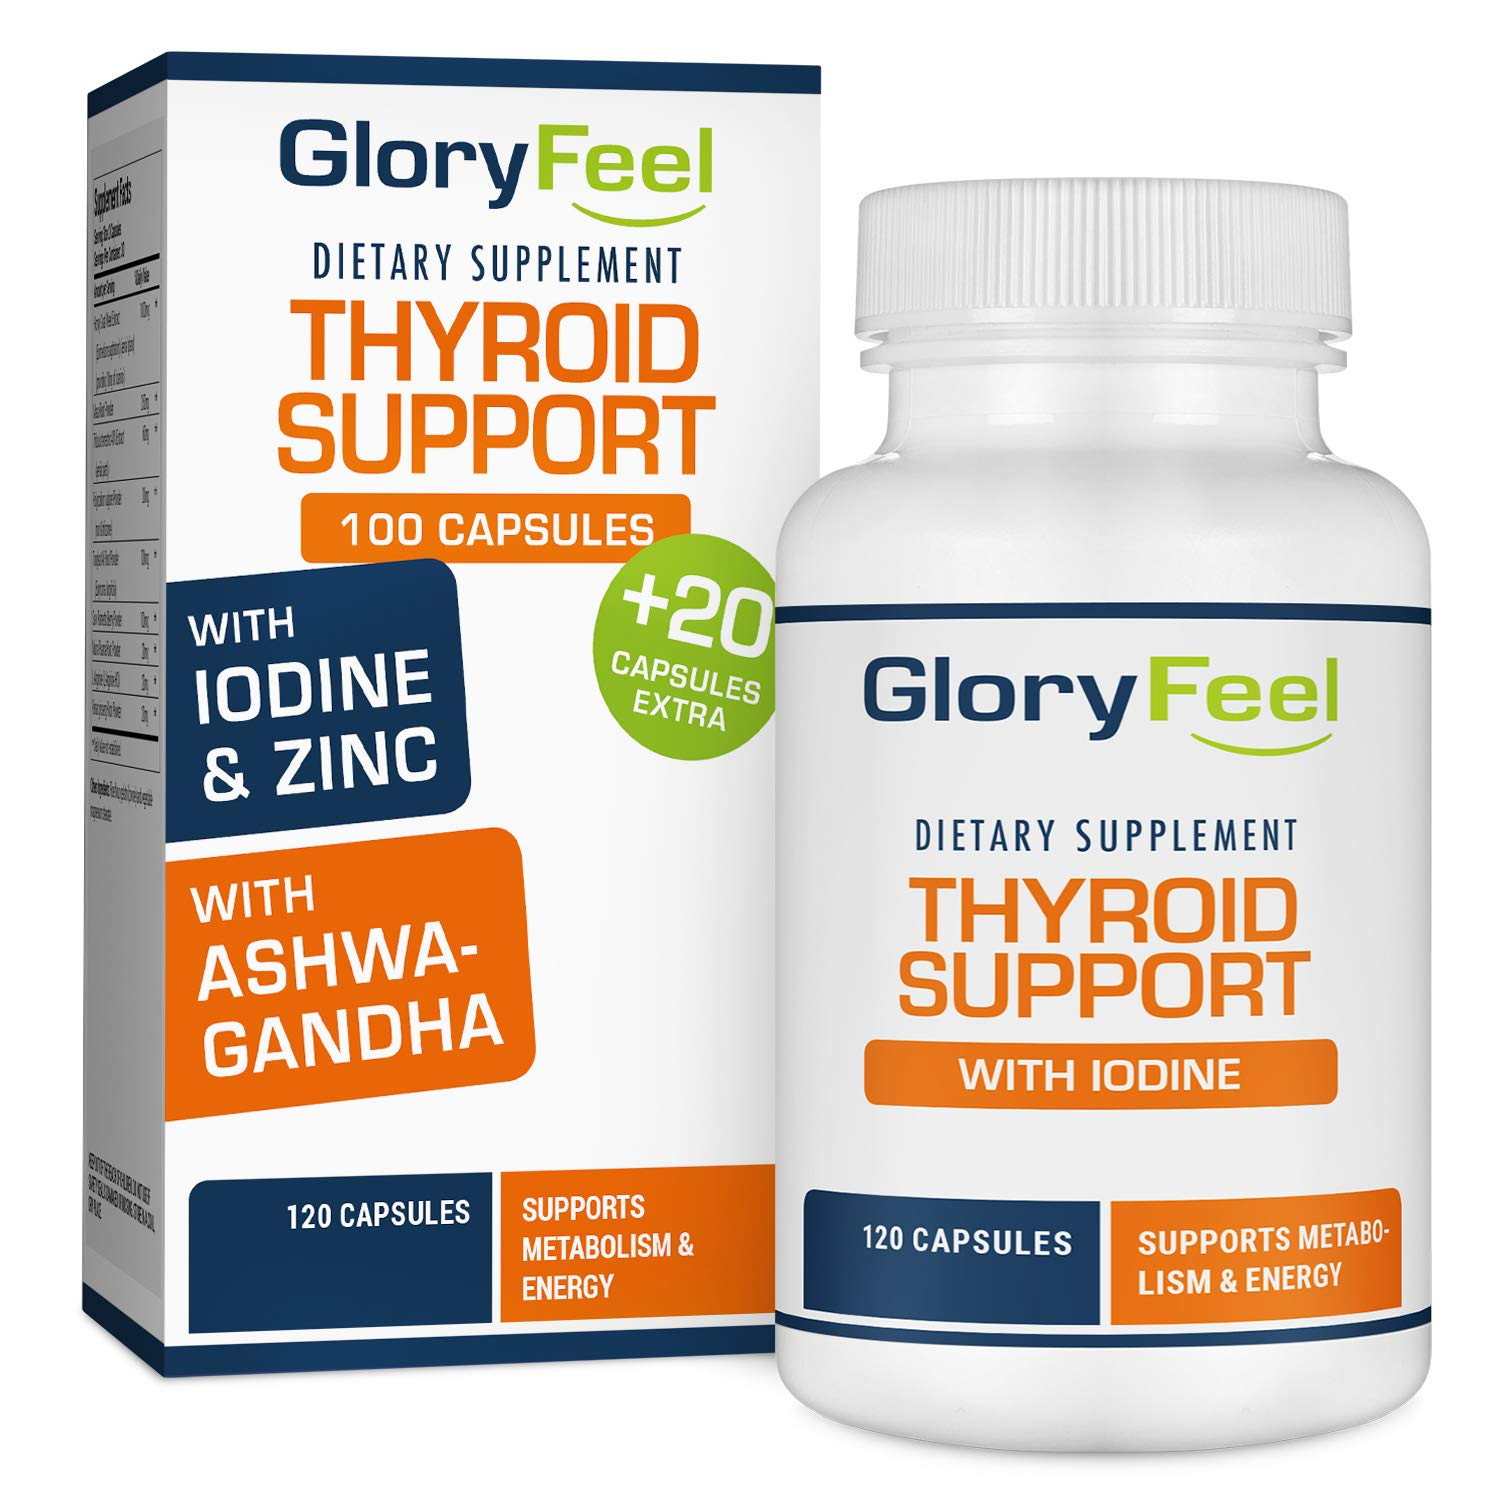 Thyroid Support Supplement with Iodine - Metabolism, Energy and Focus Formula - 60 Day Supply - Vegetarian & Non-GMO - Vitamin B12 Complex, Zinc, Selenium, Ashwagandha, Copper & More by Gloryfeel